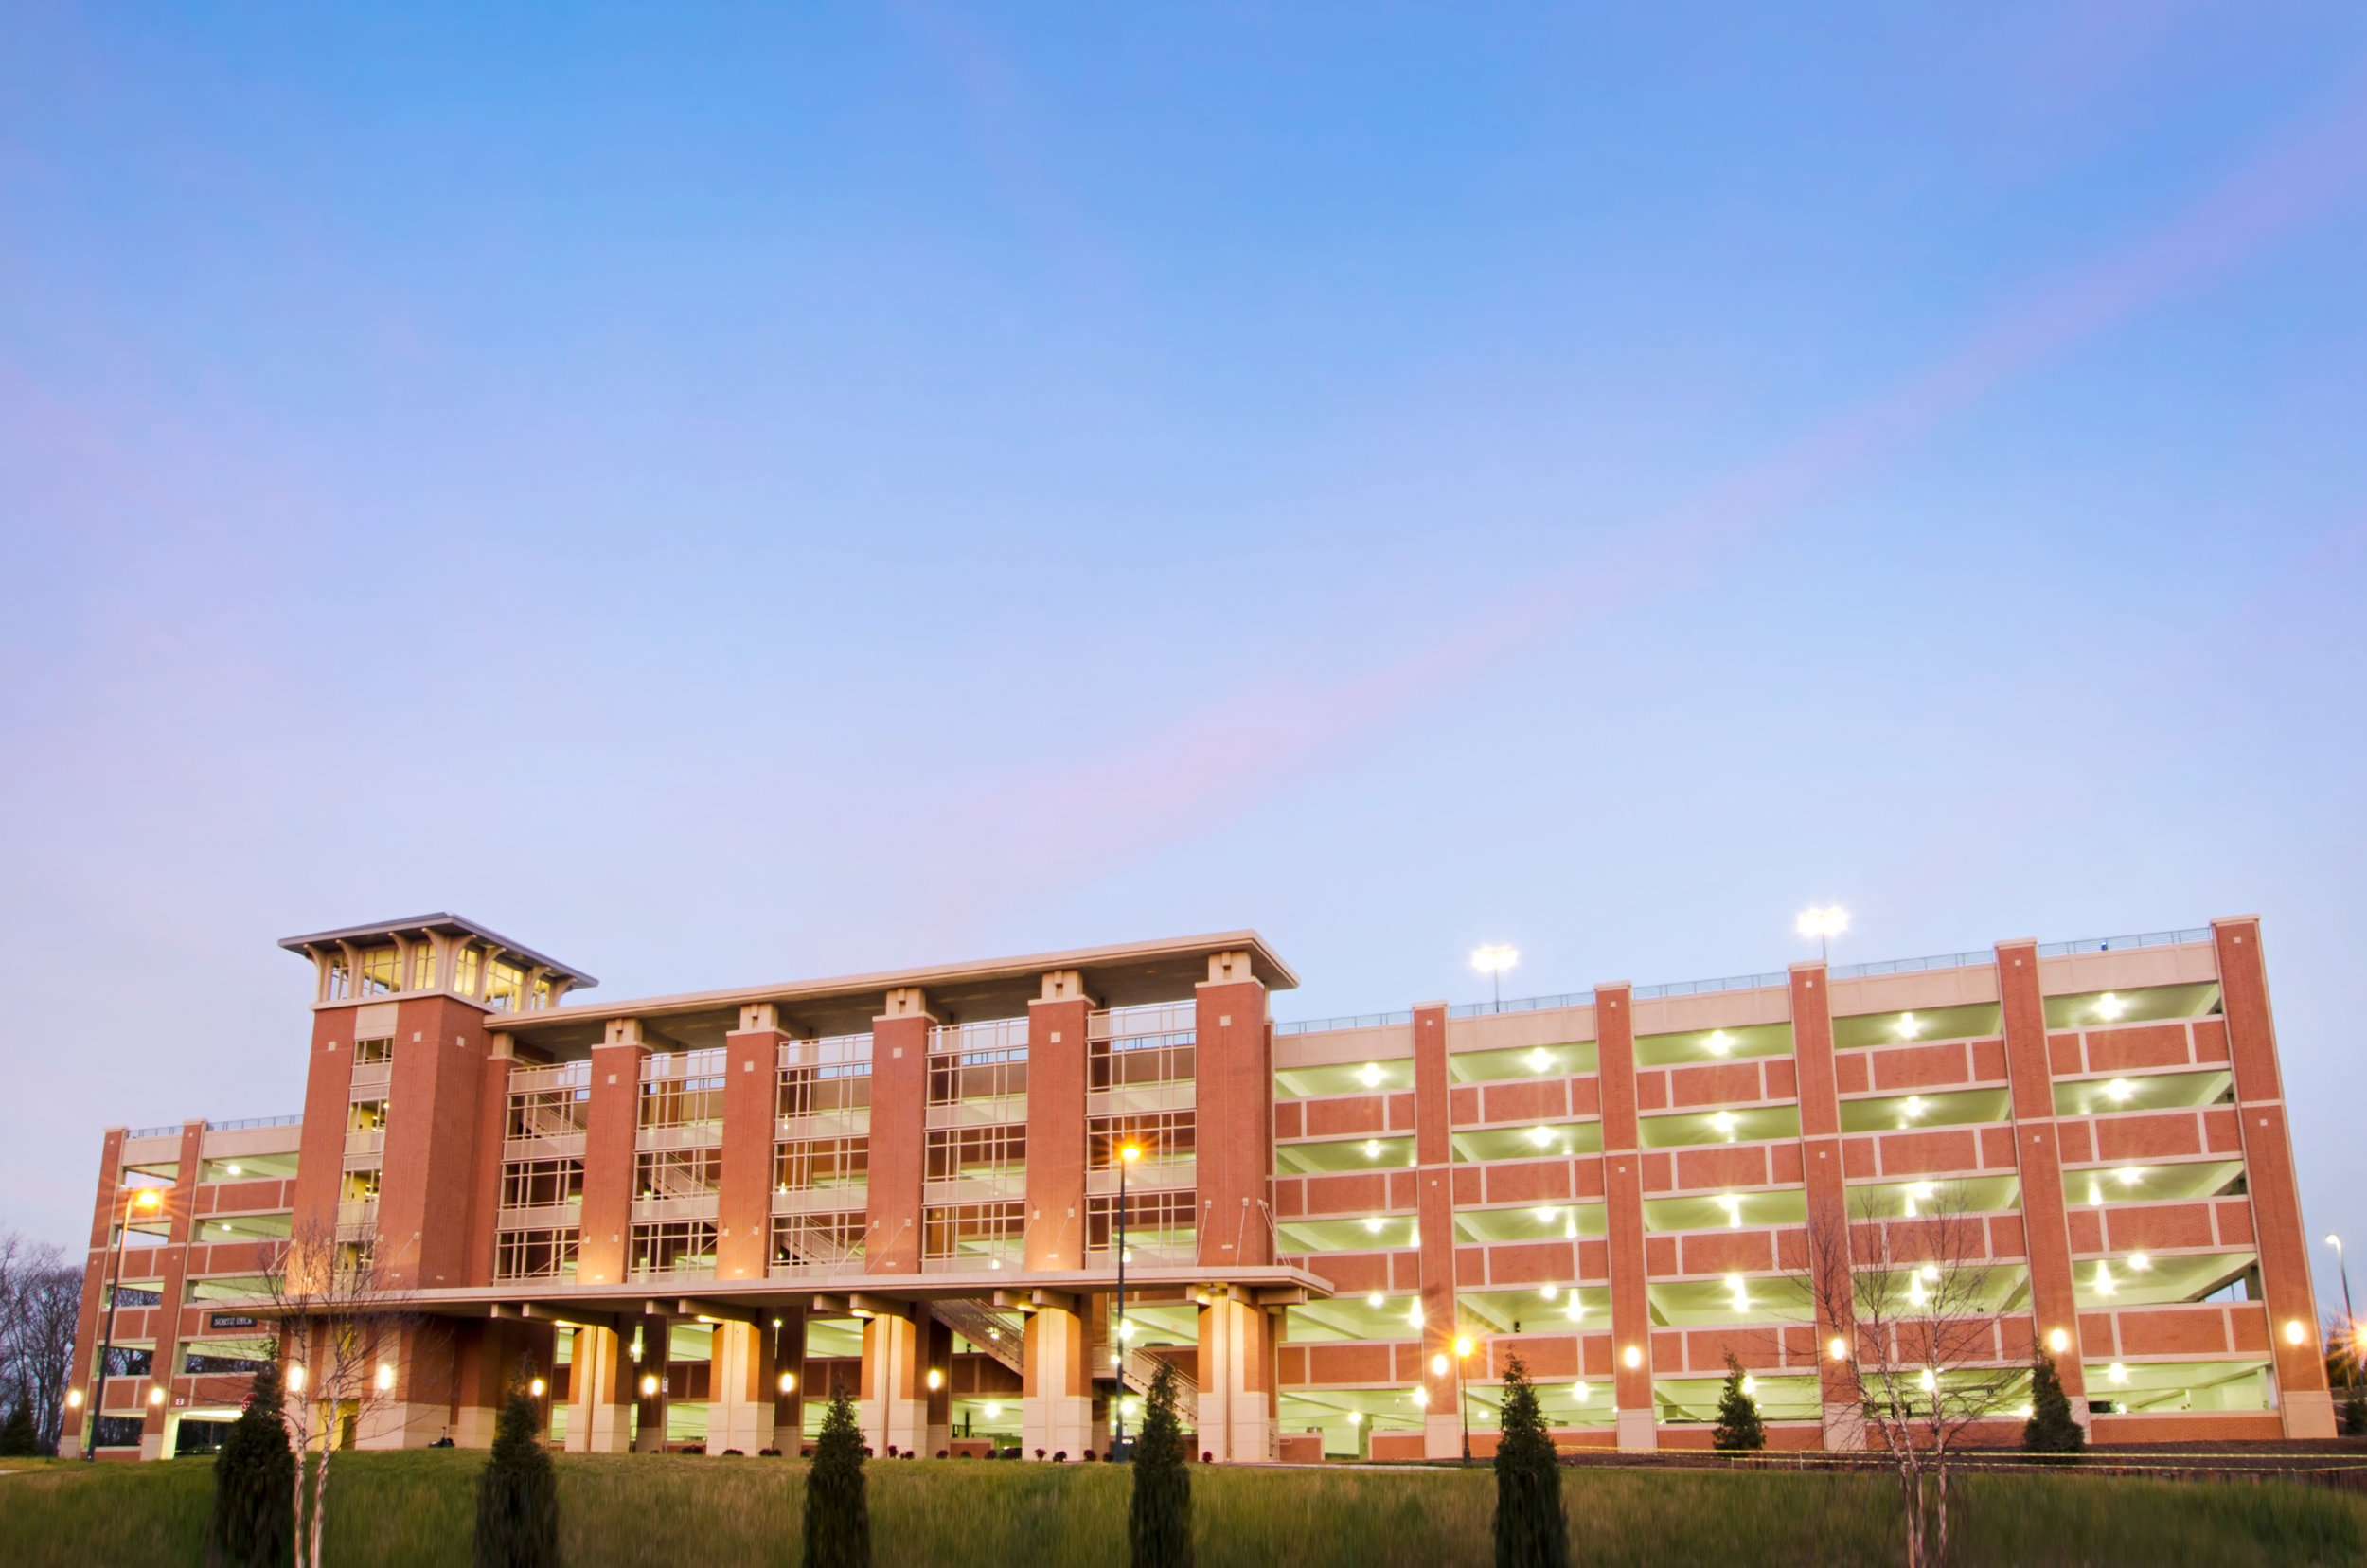 ADW-Higher-Education-UNC-Charlotte-NC-Parking-Deck-1.jpg